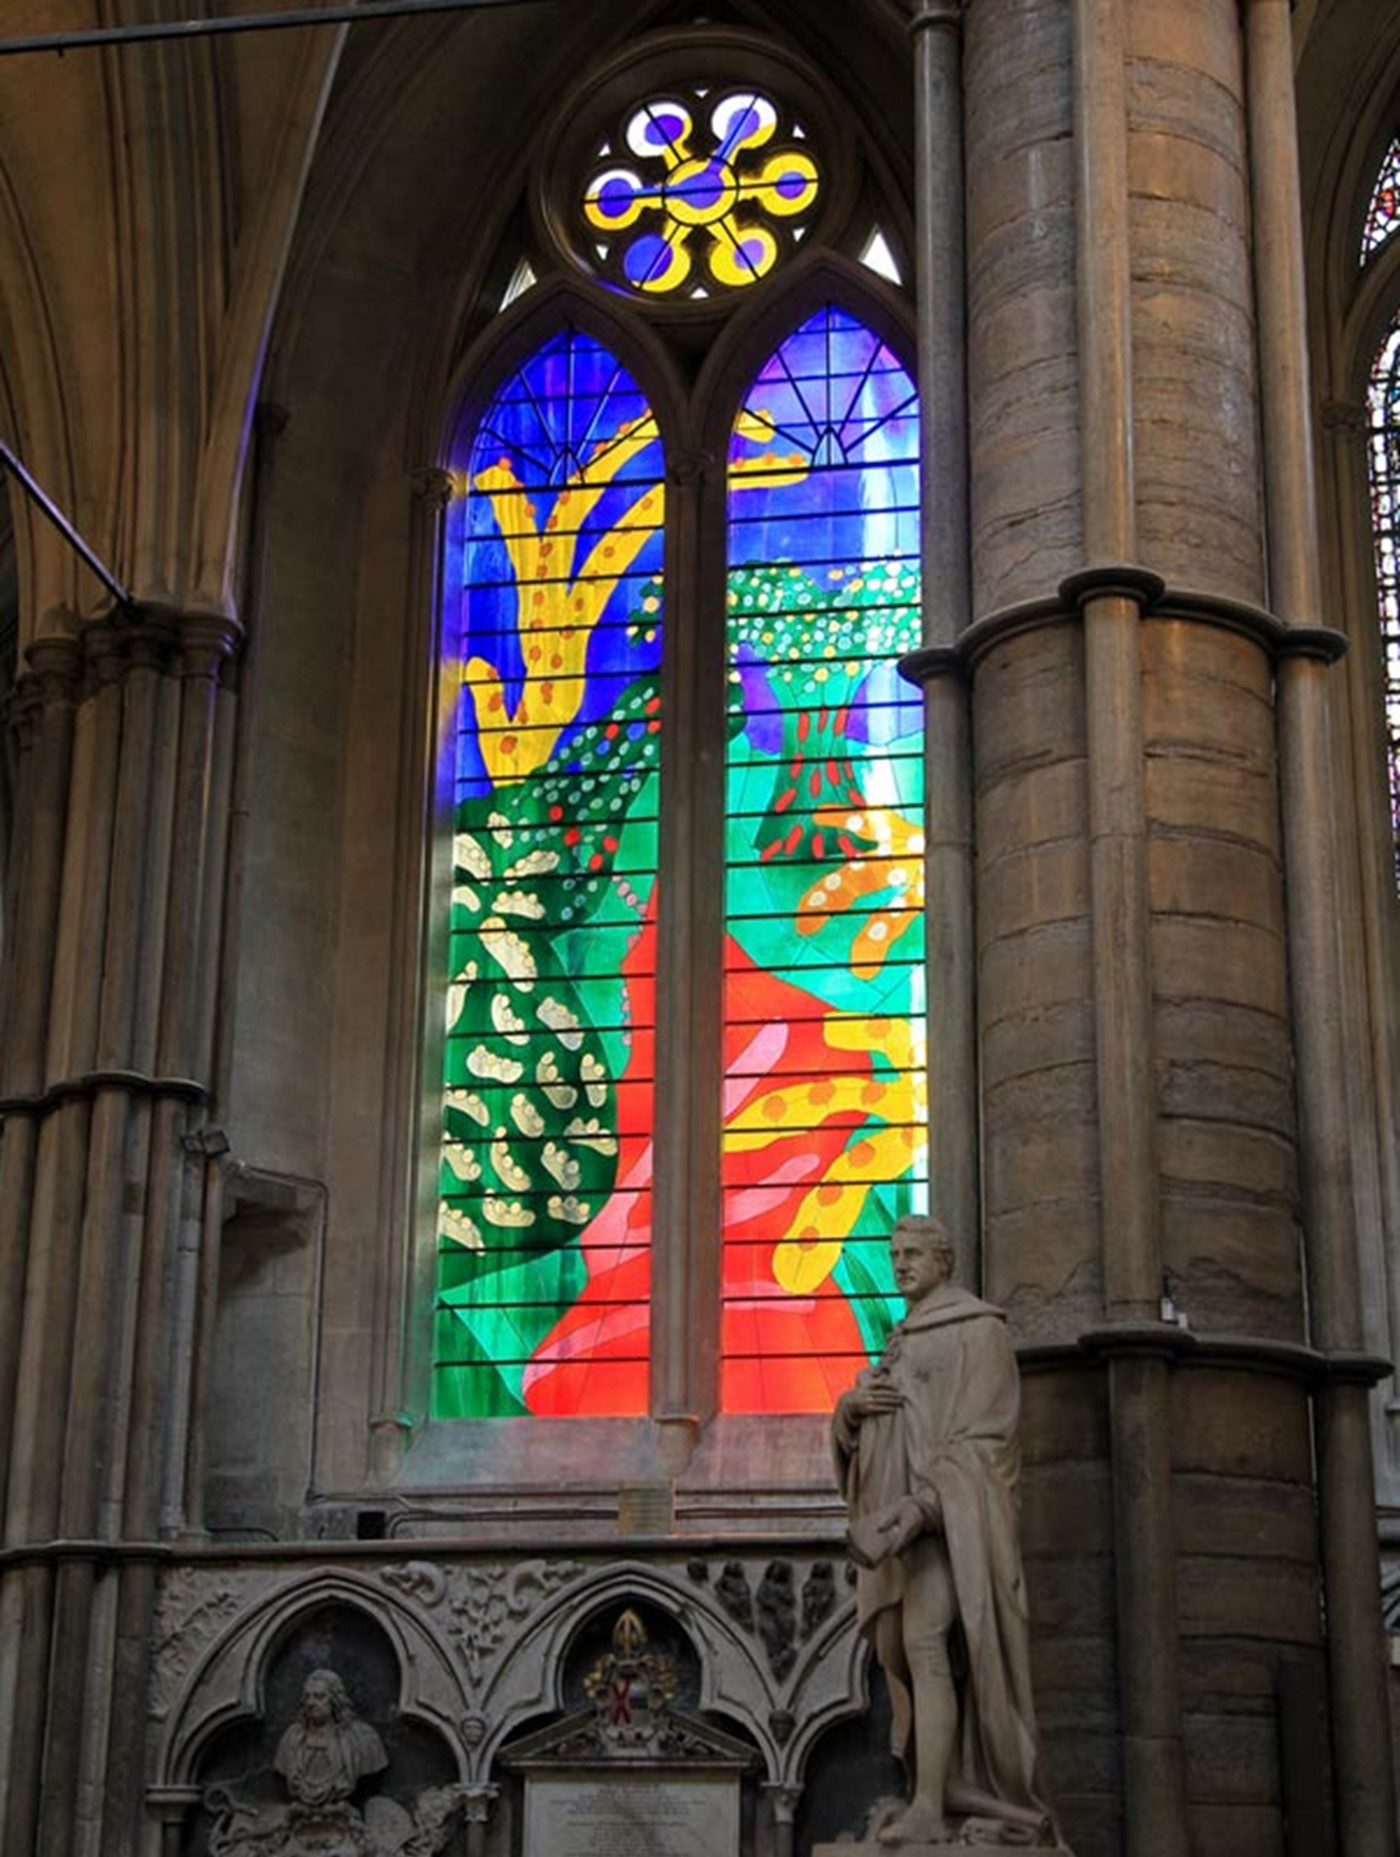 queens-window-north-transept-picture-partnership.jpg